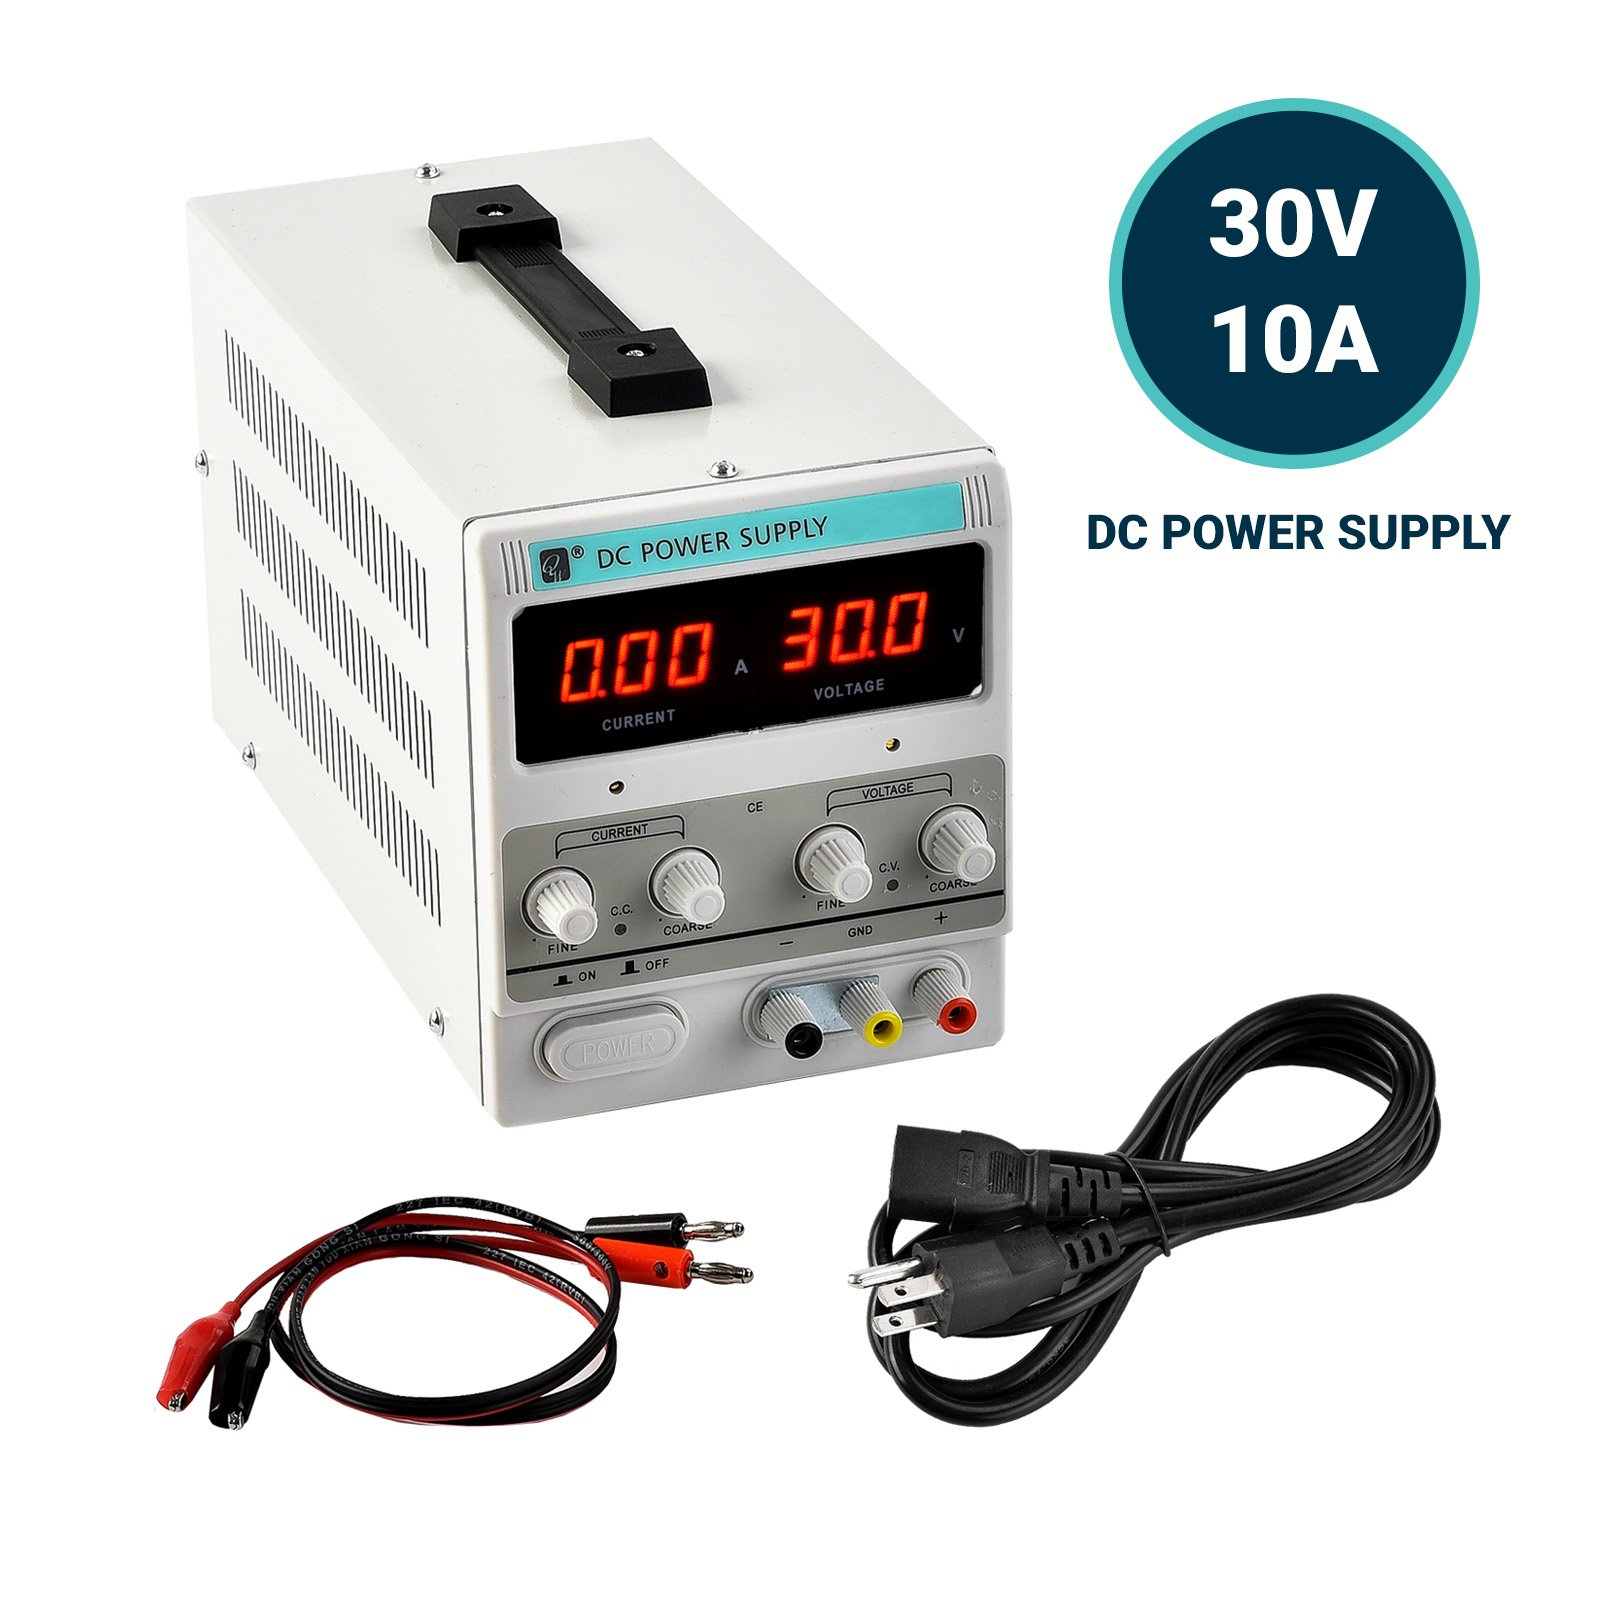 KUPPET Lab Home DC Power Supply-30V 0-10A US 110V-Variable Precision Adjustable-Digital Dual LED Display-w/Clip Cable+3 prong Plug DC Power Connector